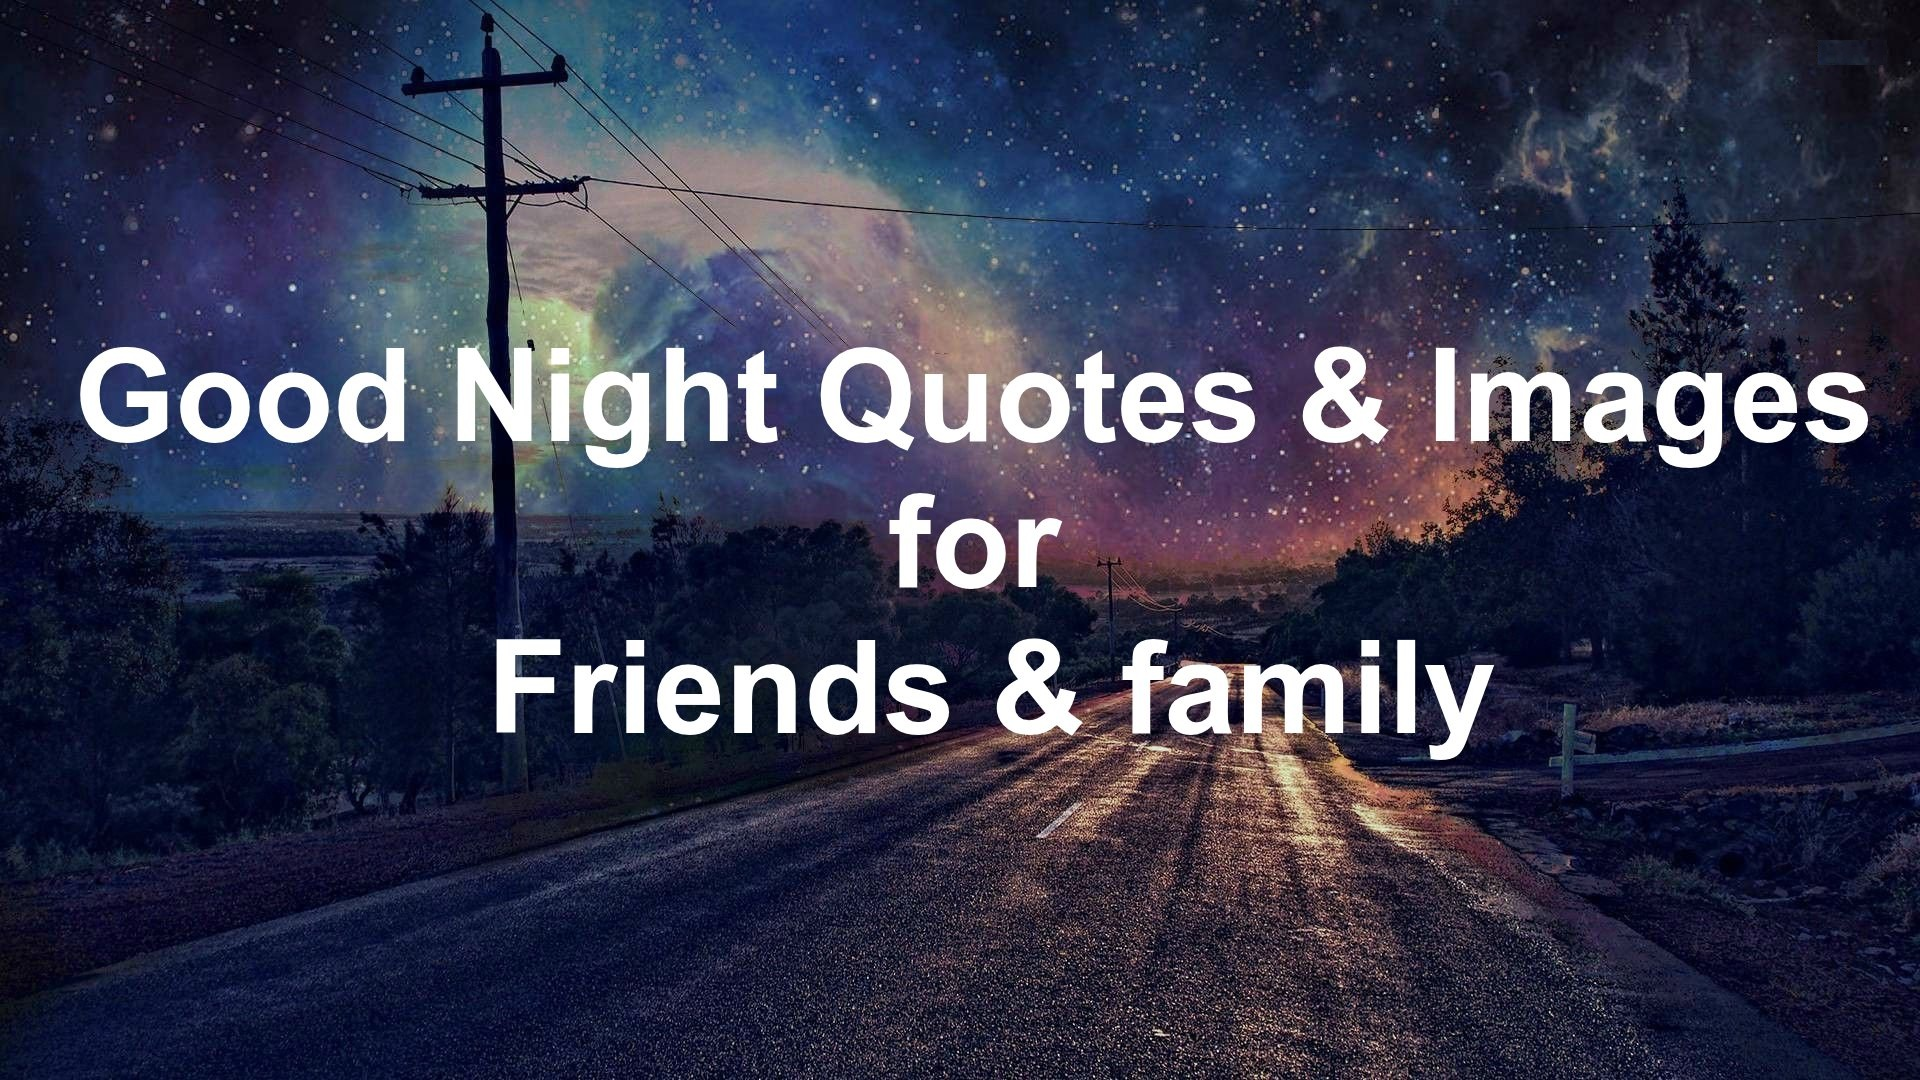 Good Night Quotes, Images For Friends And Family